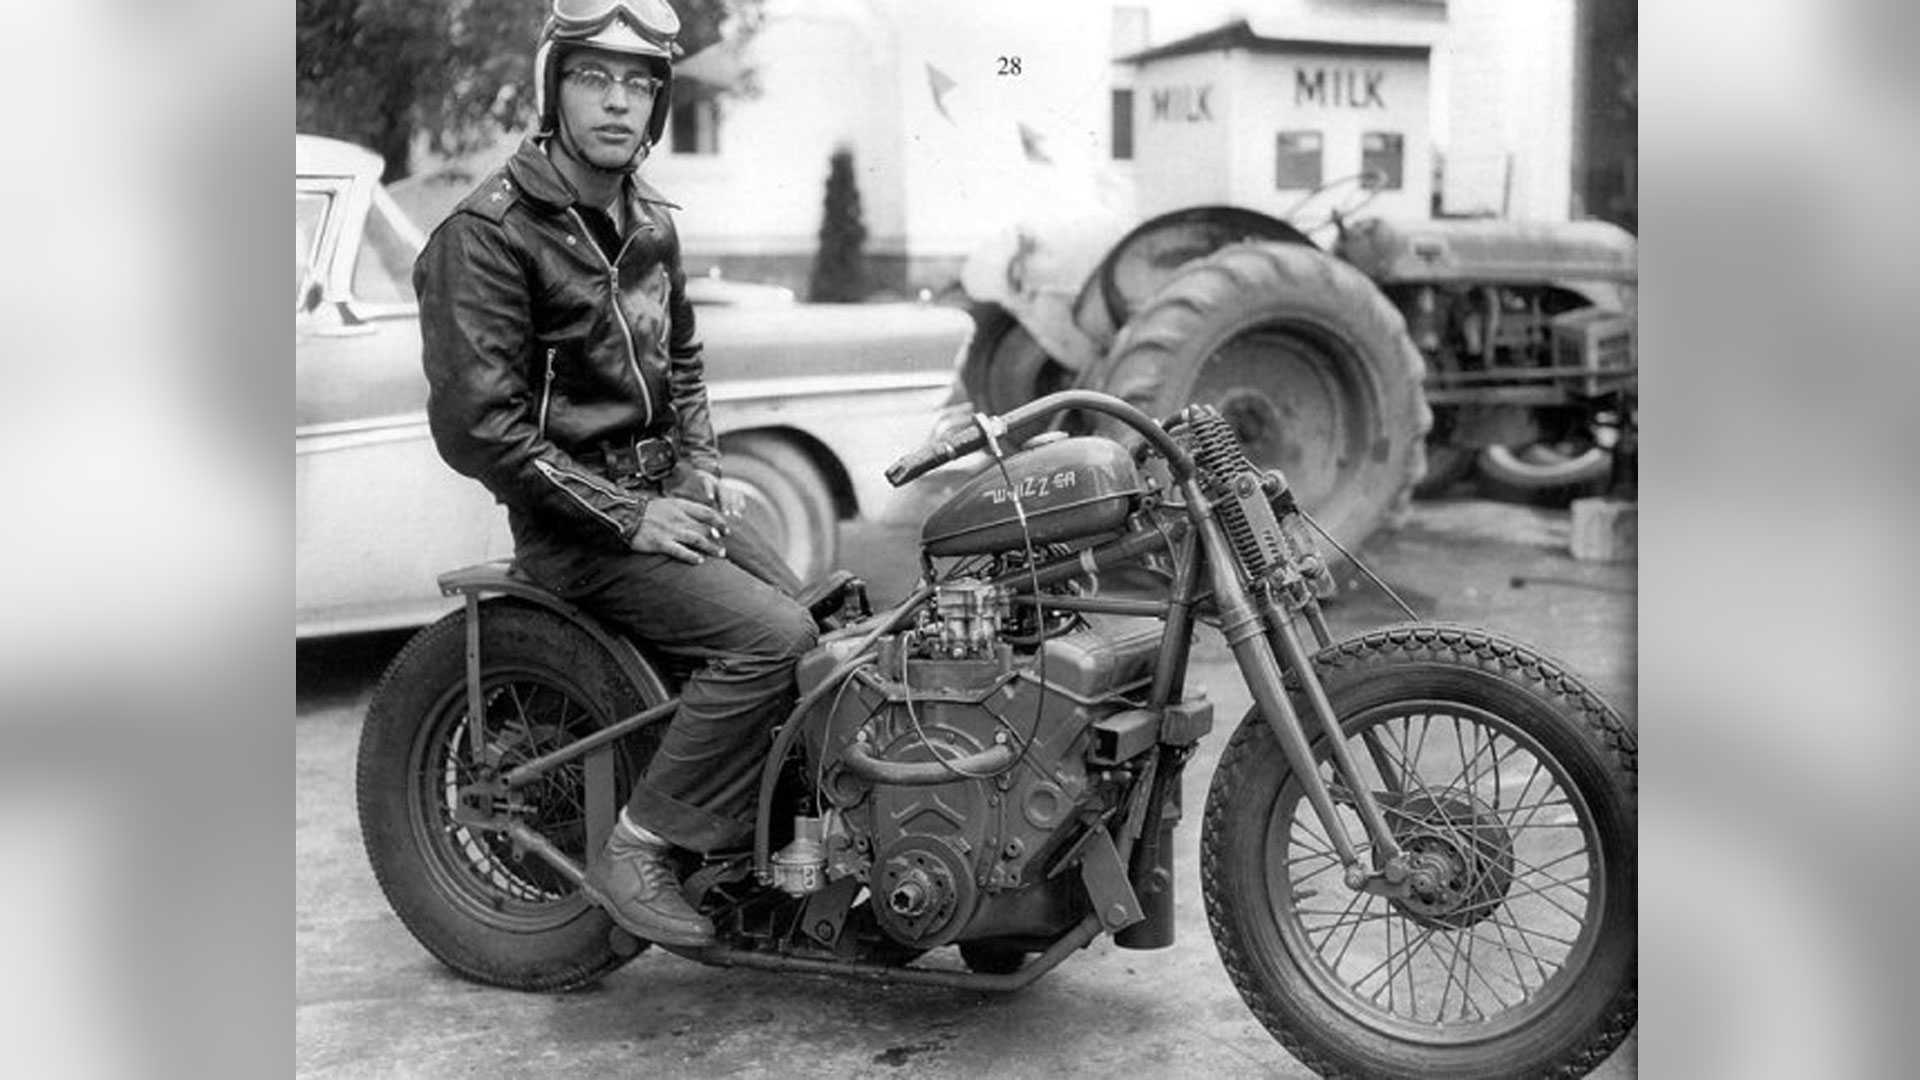 Top Ten Most Frightening Motorcycles